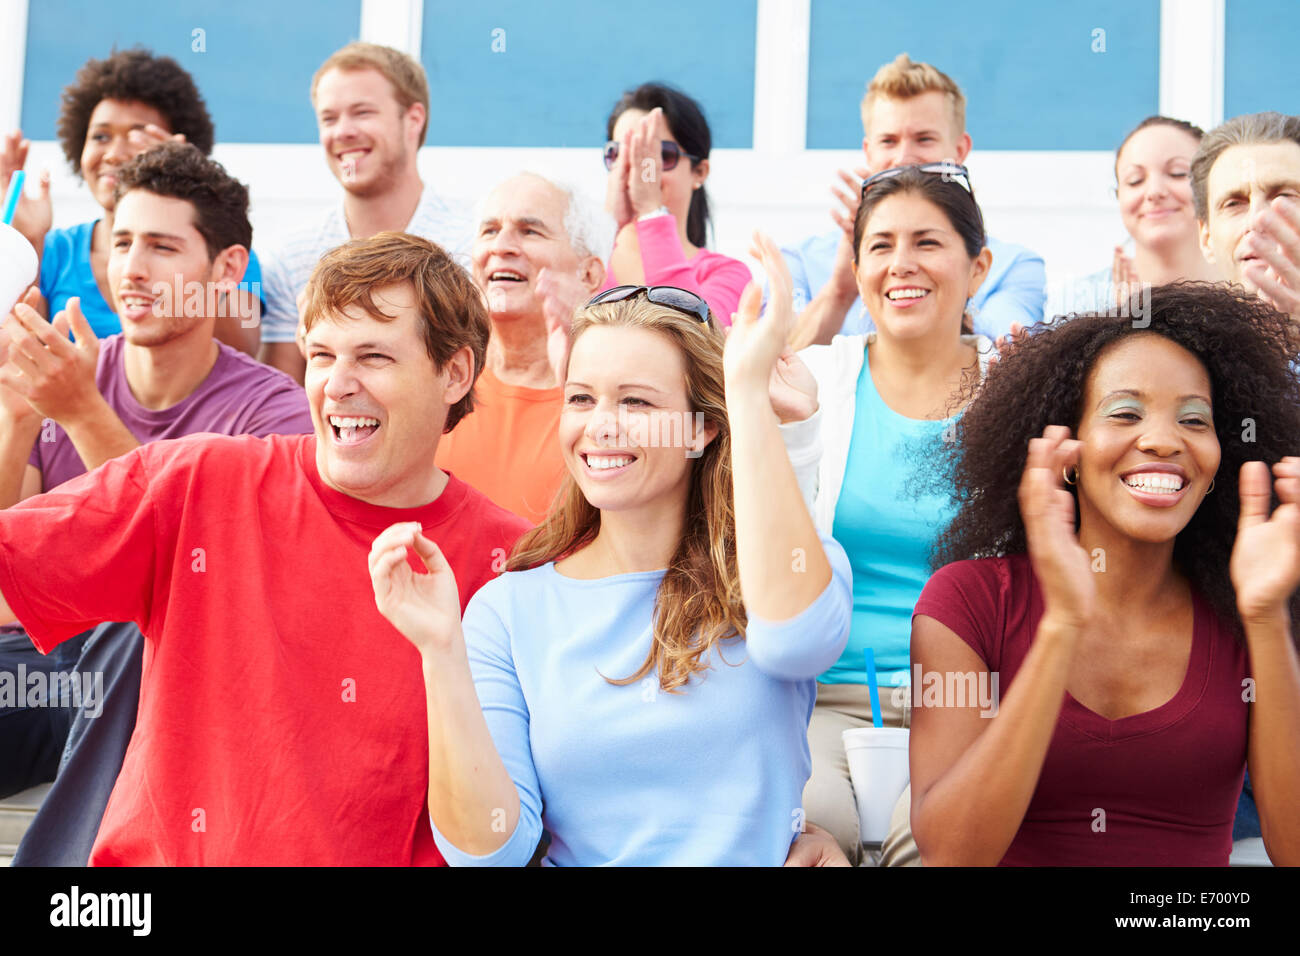 Spectators Cheering At Outdoor Sports Event - Stock Image